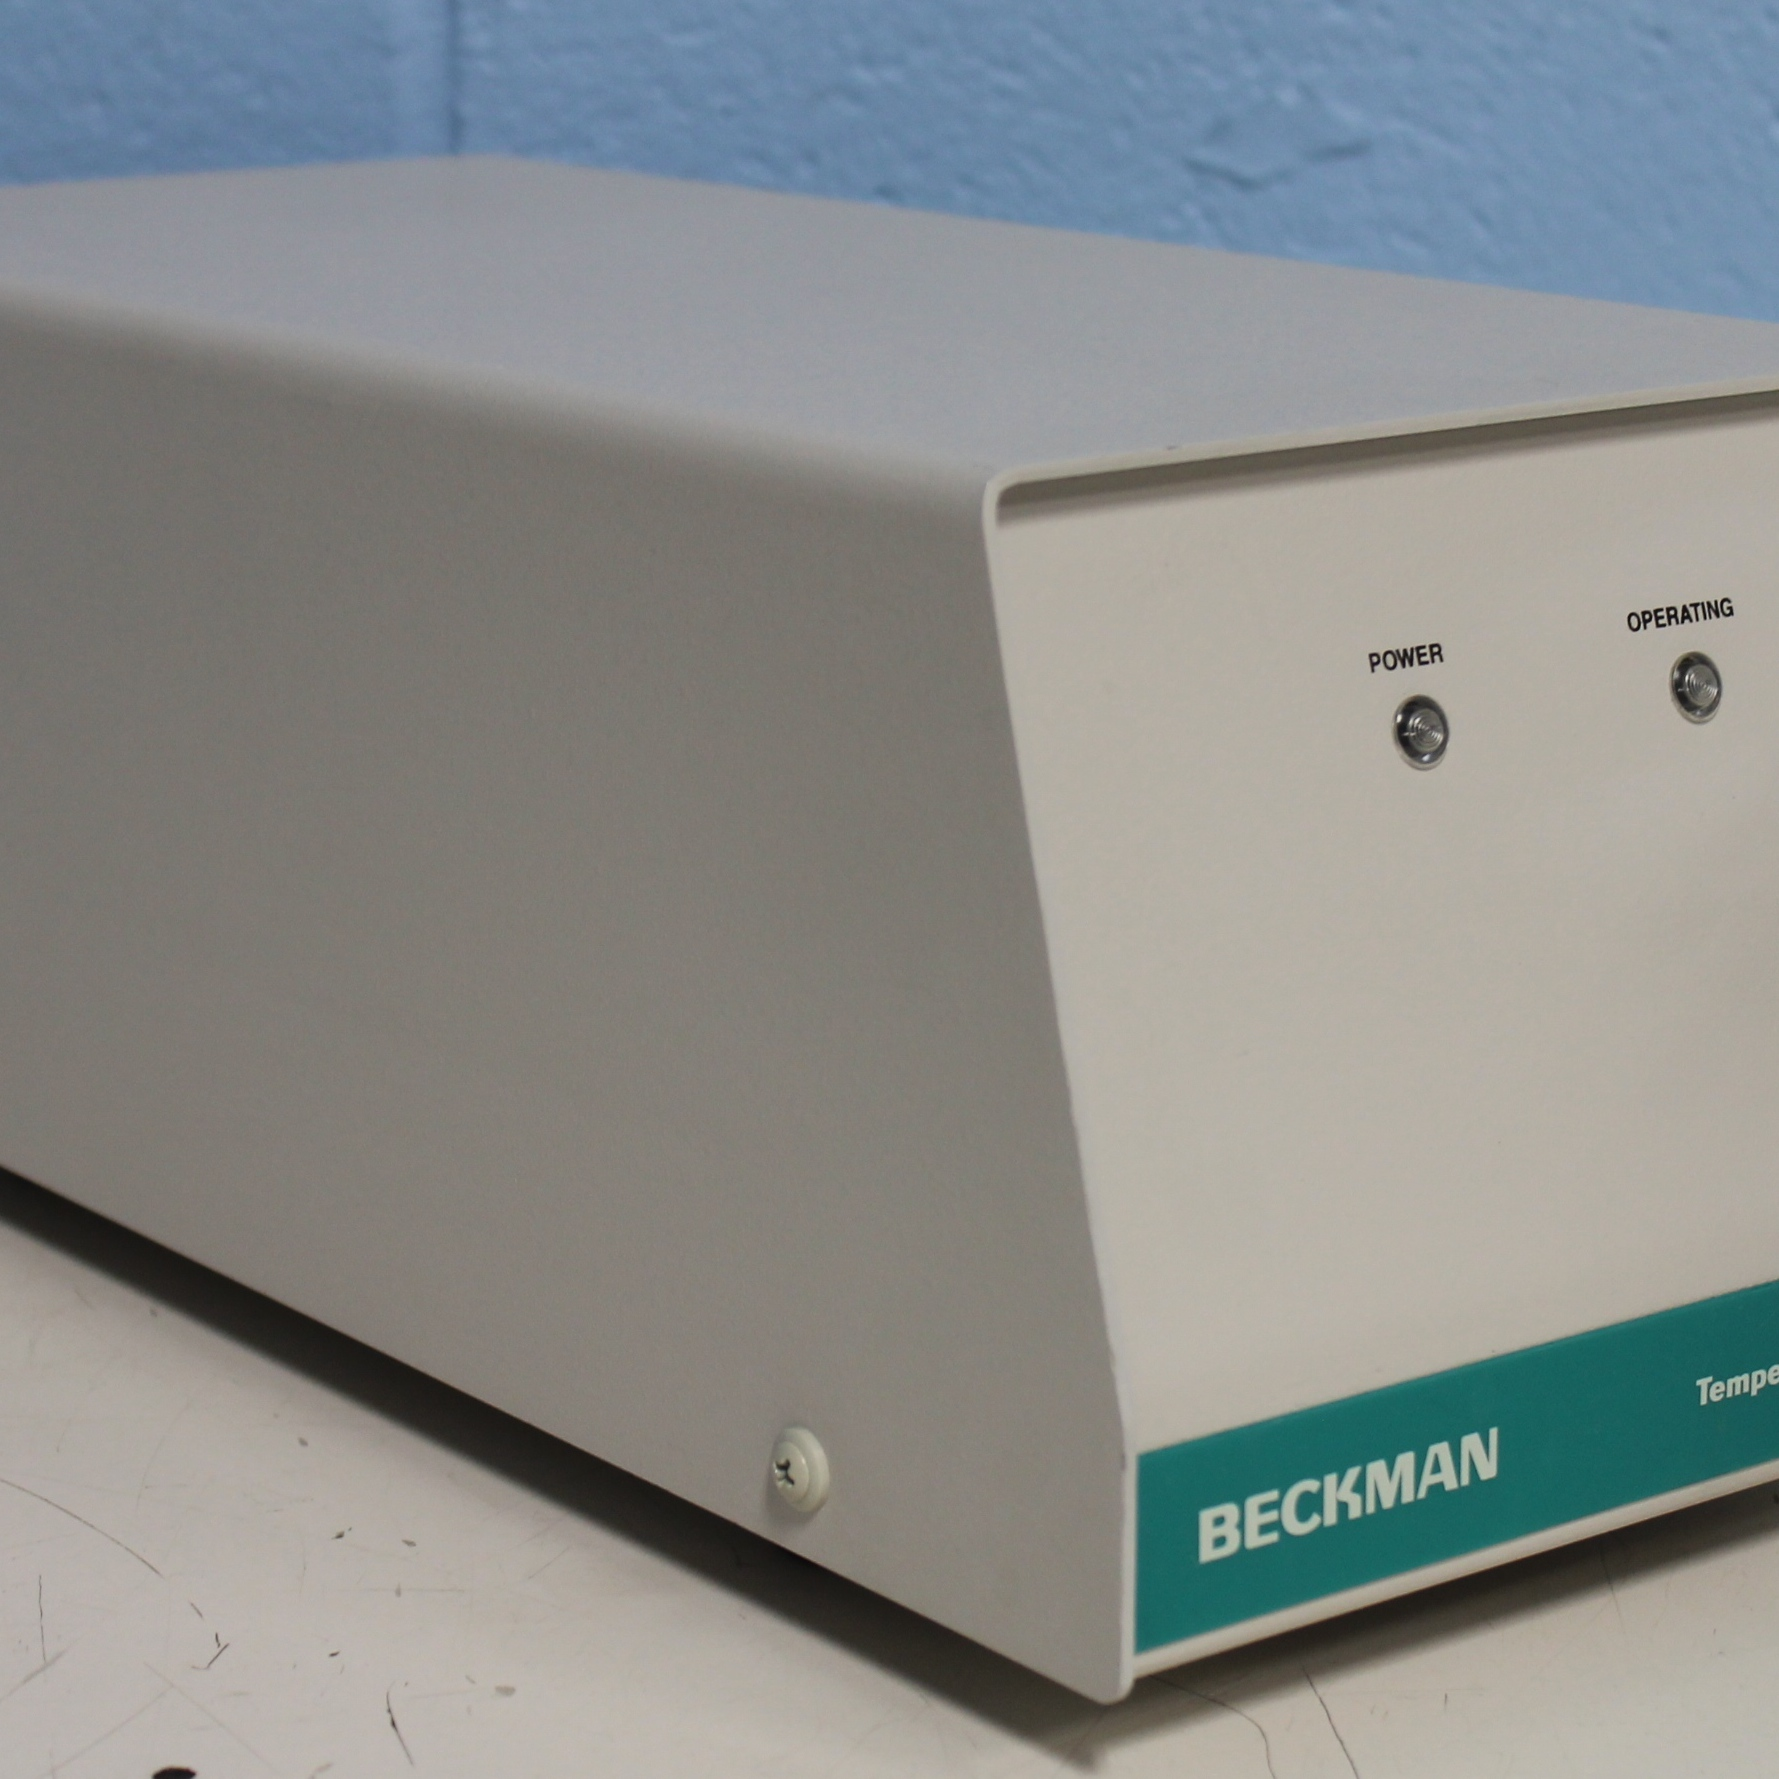 Beckman Coulter Spectrophotometer Temperature Controller Image